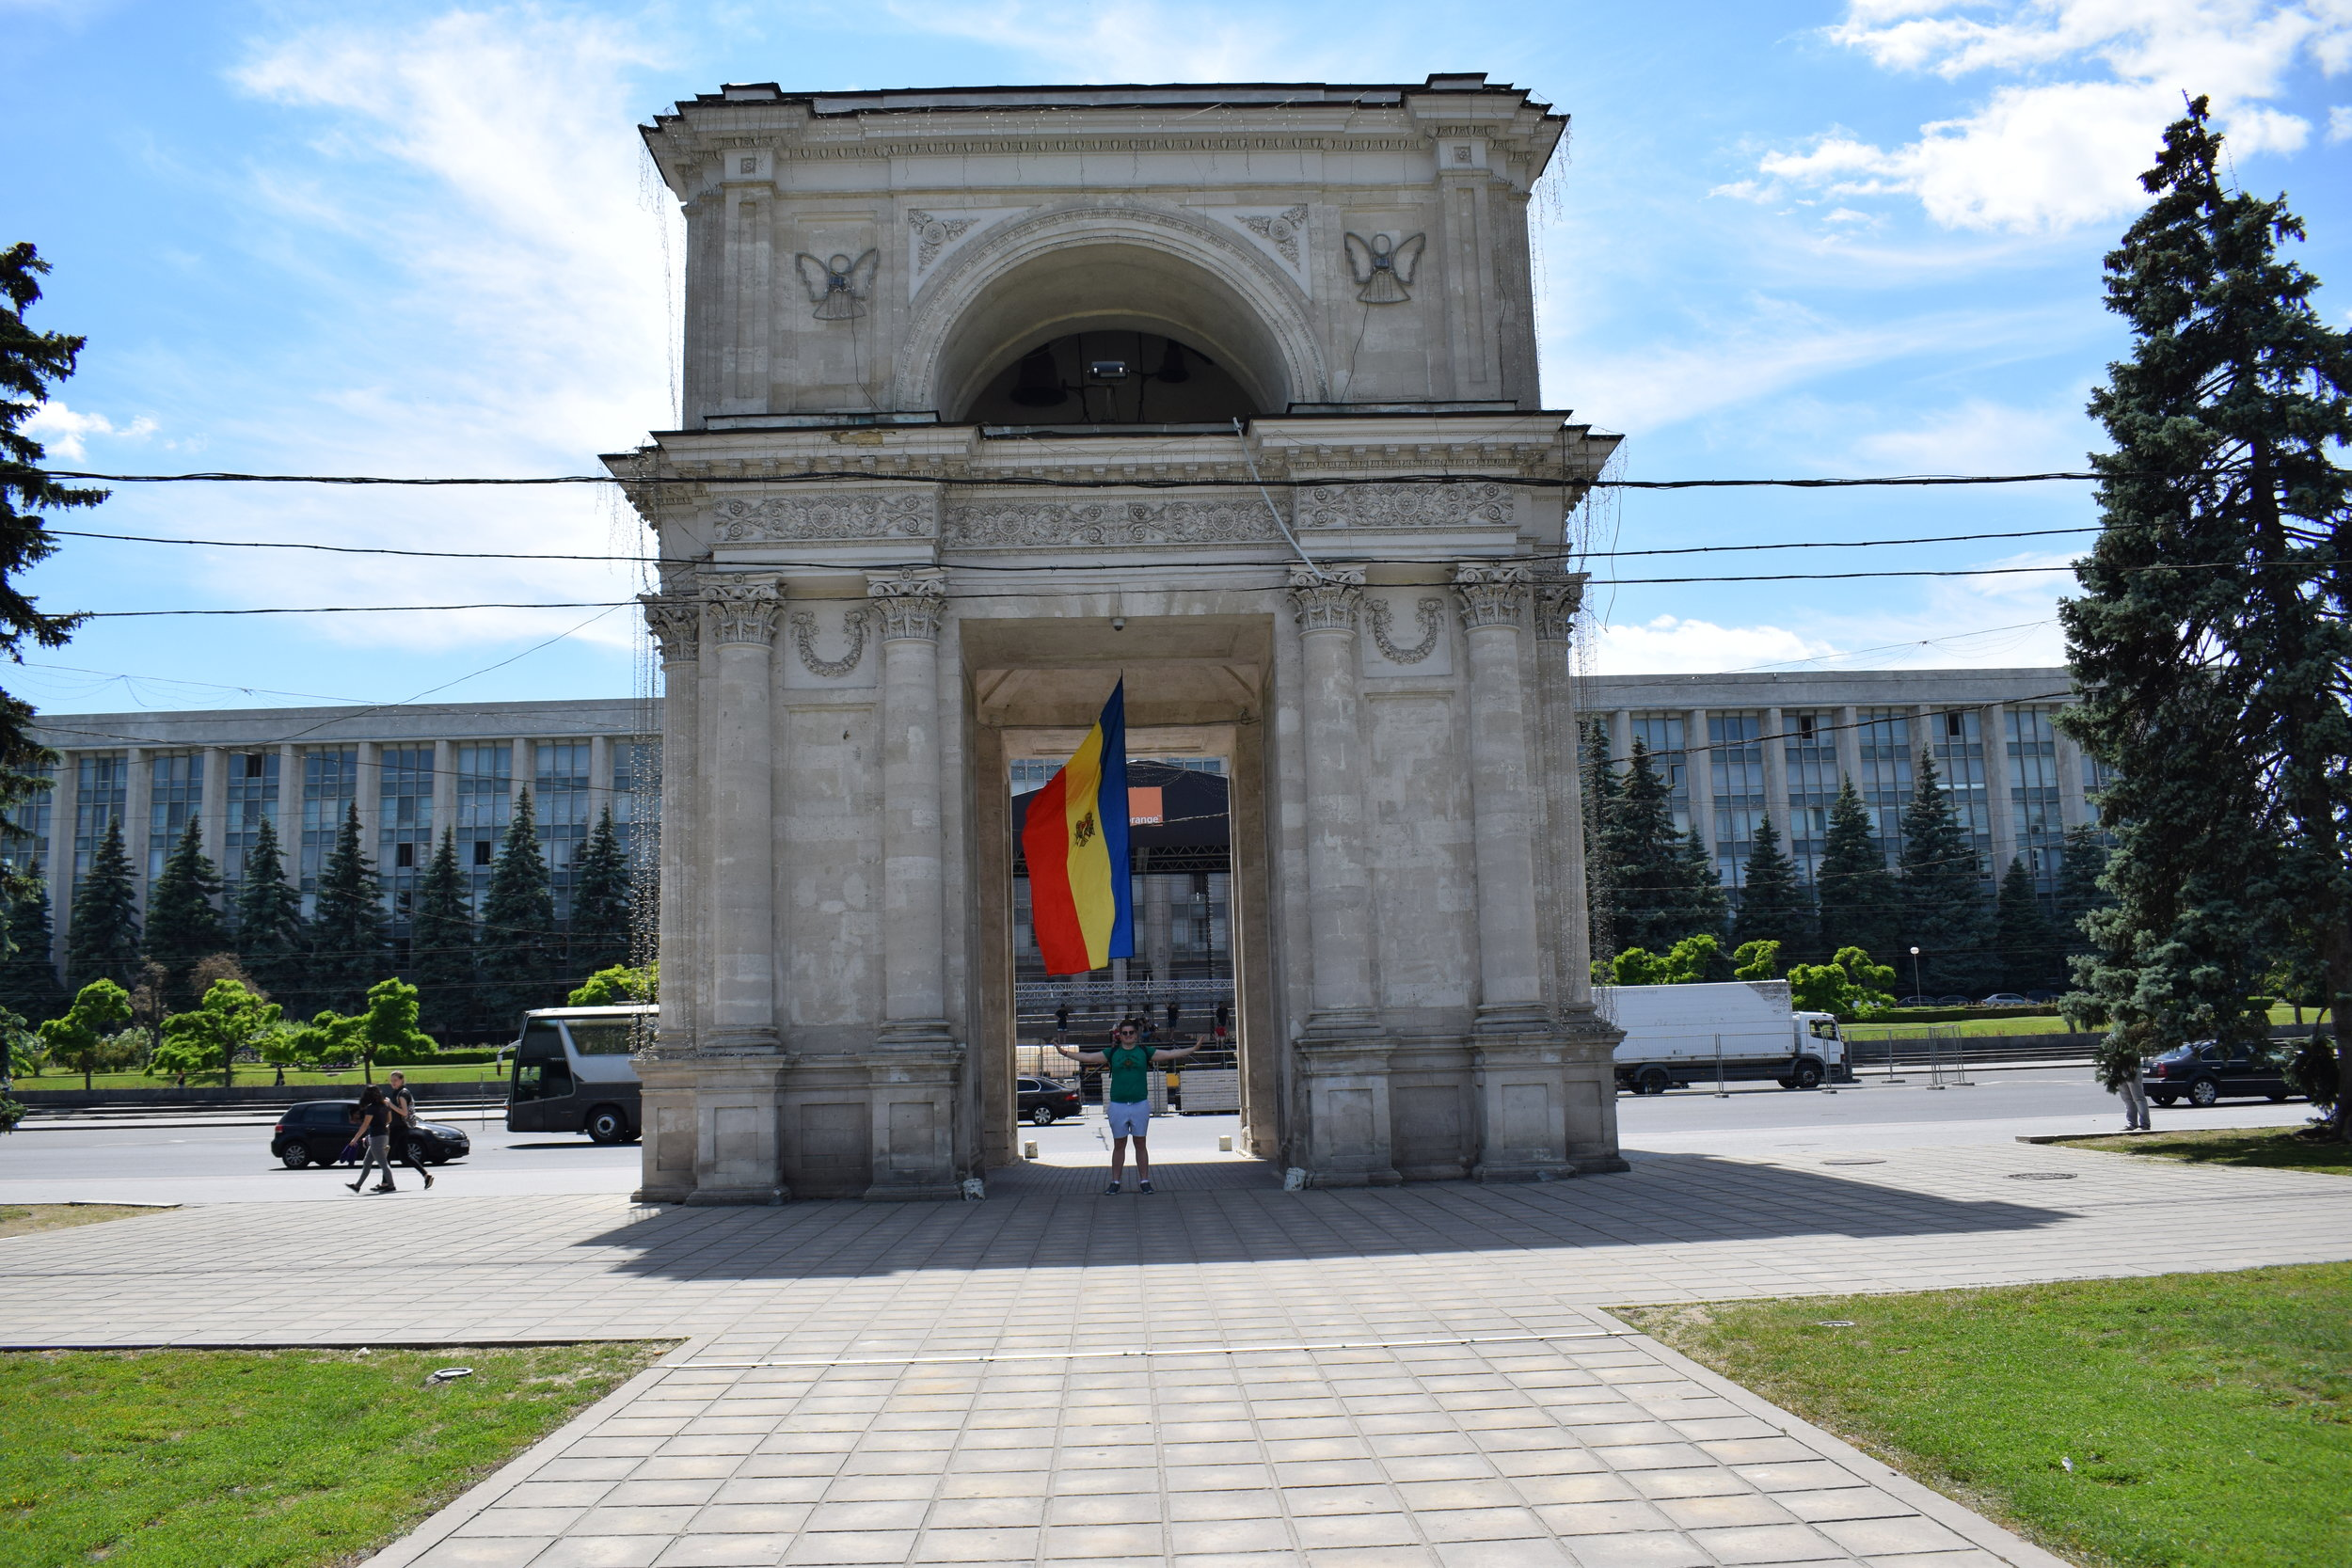 Standing beneath the Triumphal Arch in Chisinau, Moldova.